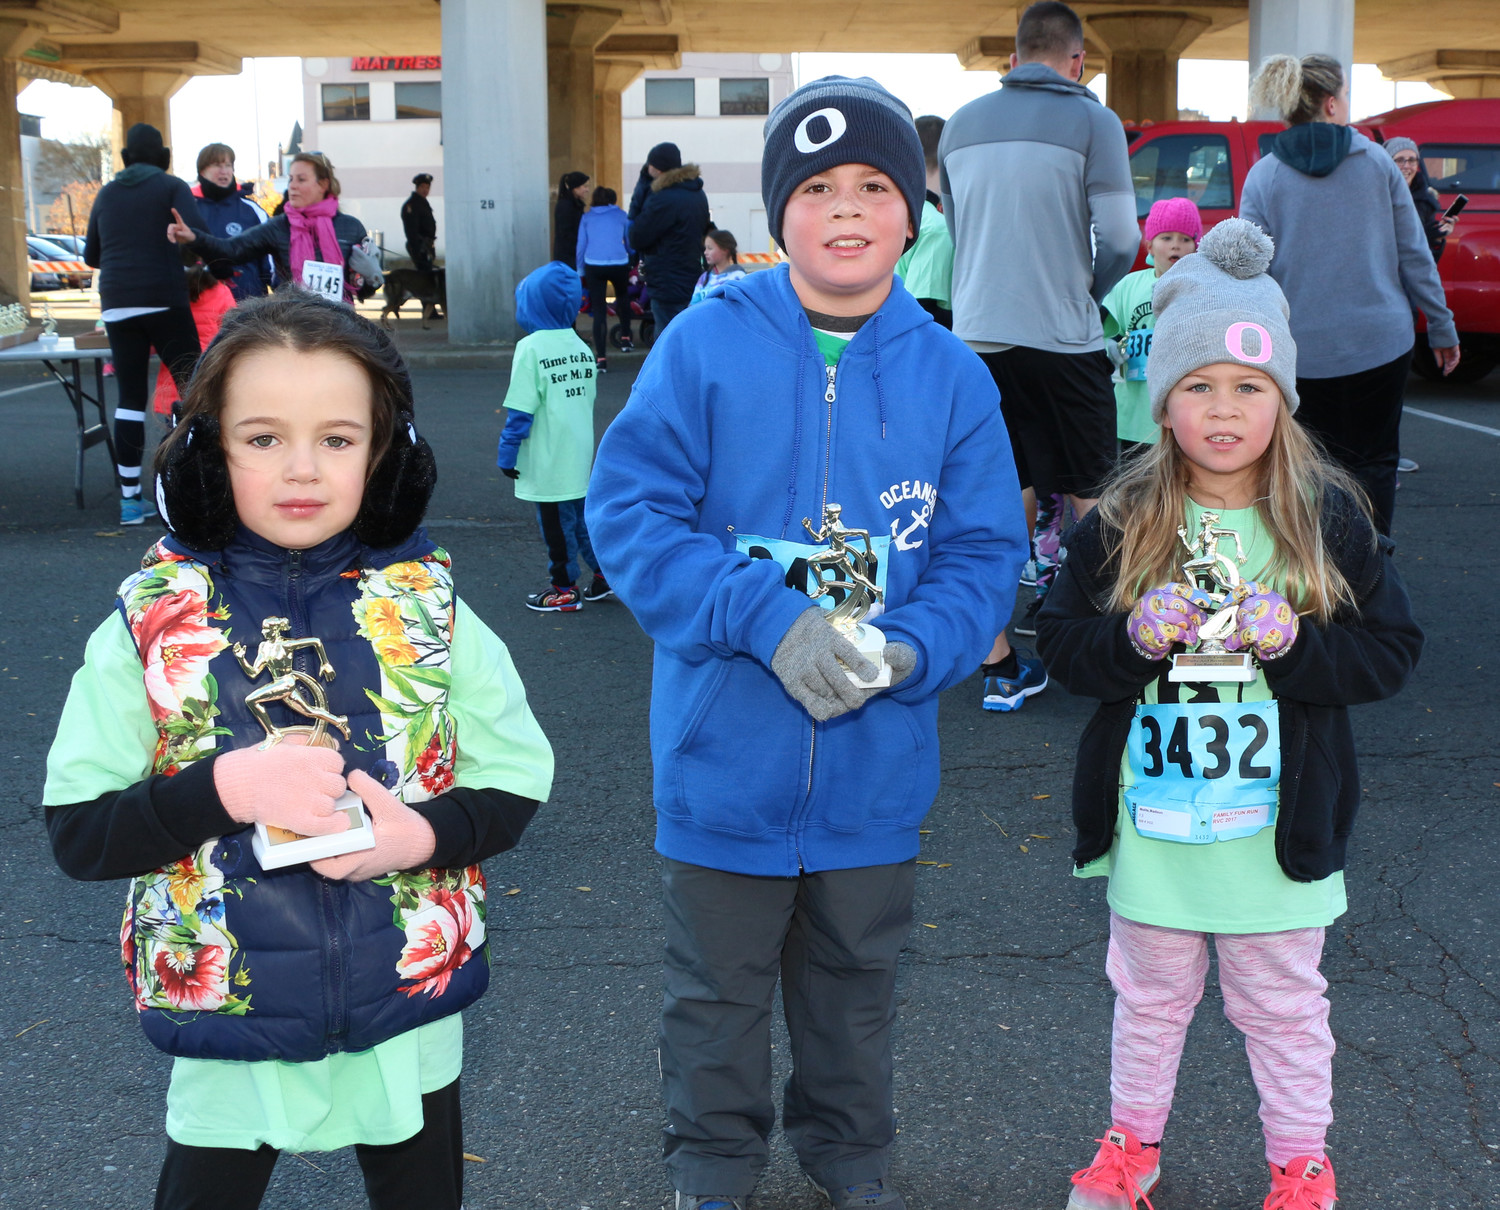 Cleo Lipatov, 6, Mike Molite, 8, and his five-year-old sister, Madison, finished the race.